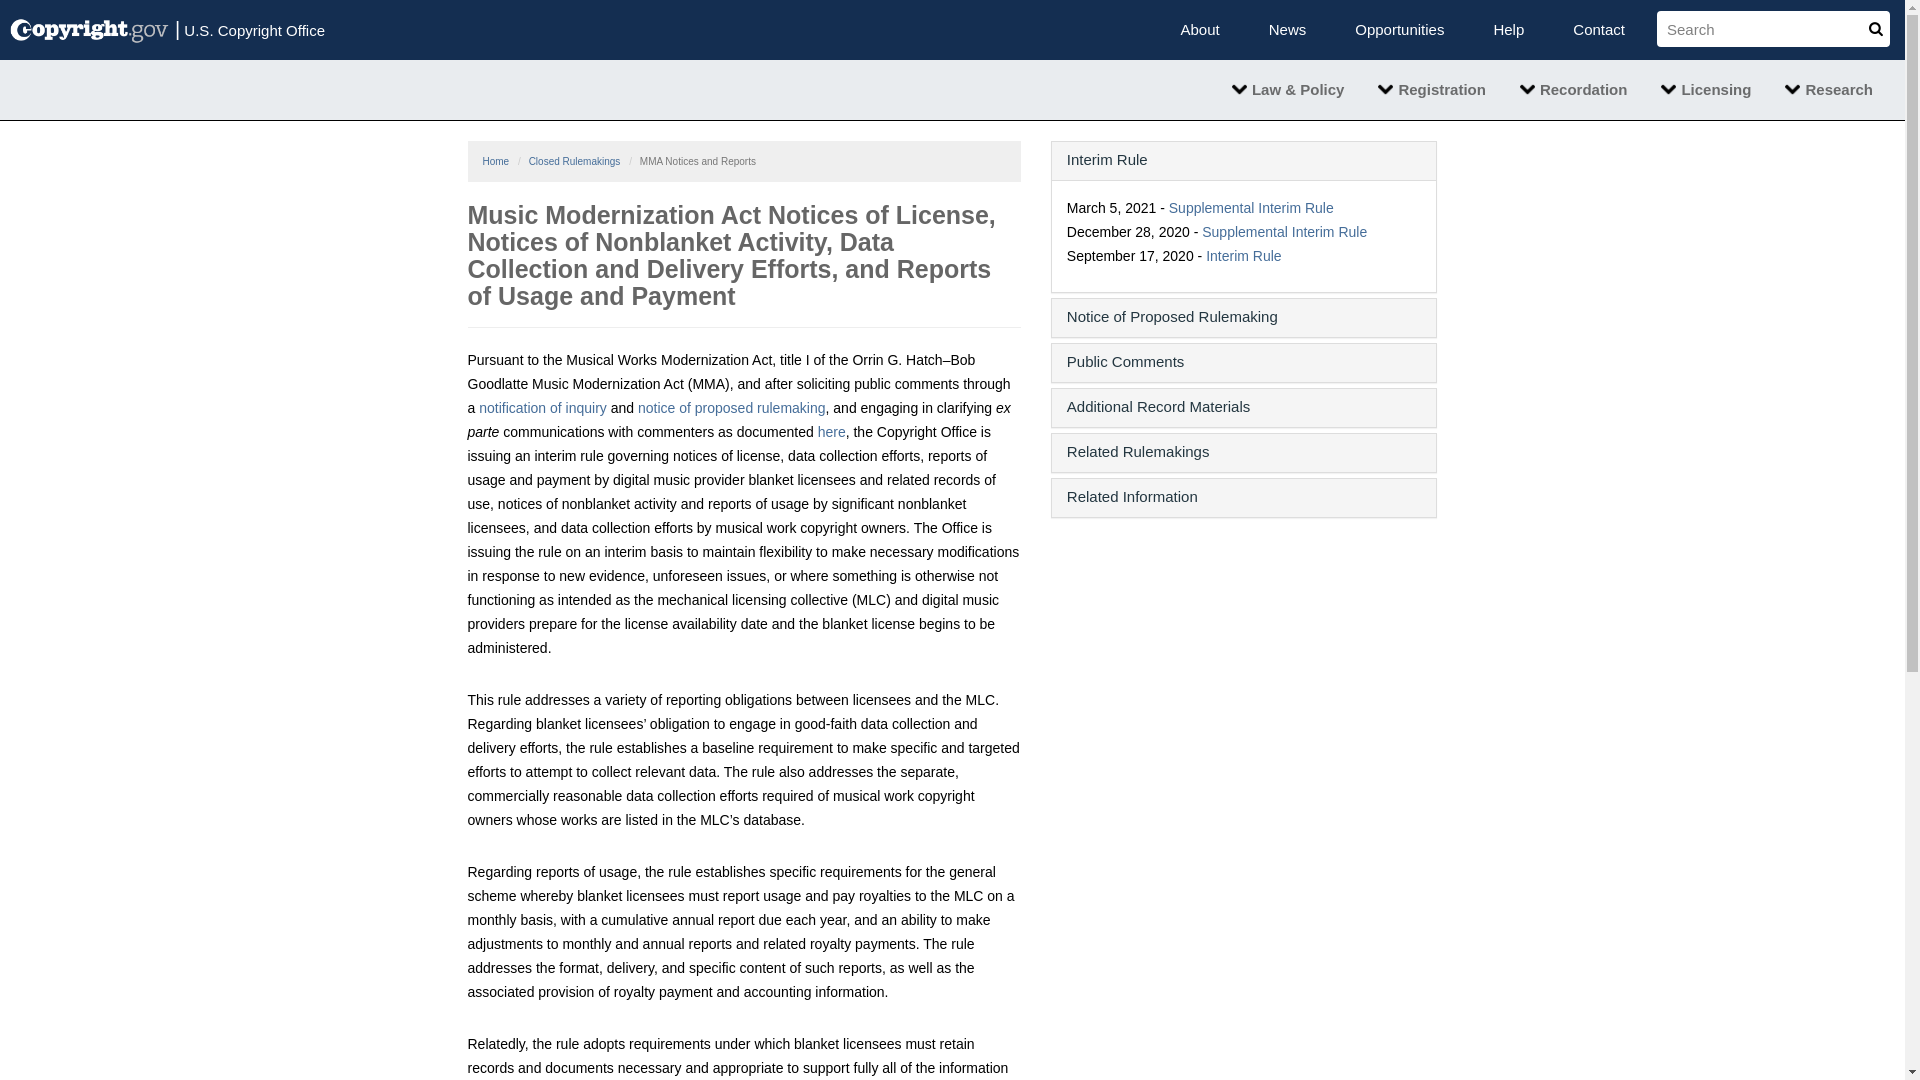 Fairness Rocks News Music Modernization Act Notices of License, Notices of Nonblanket Activity, Data Collection and Delivery Efforts, and Reports of Usage and Payment